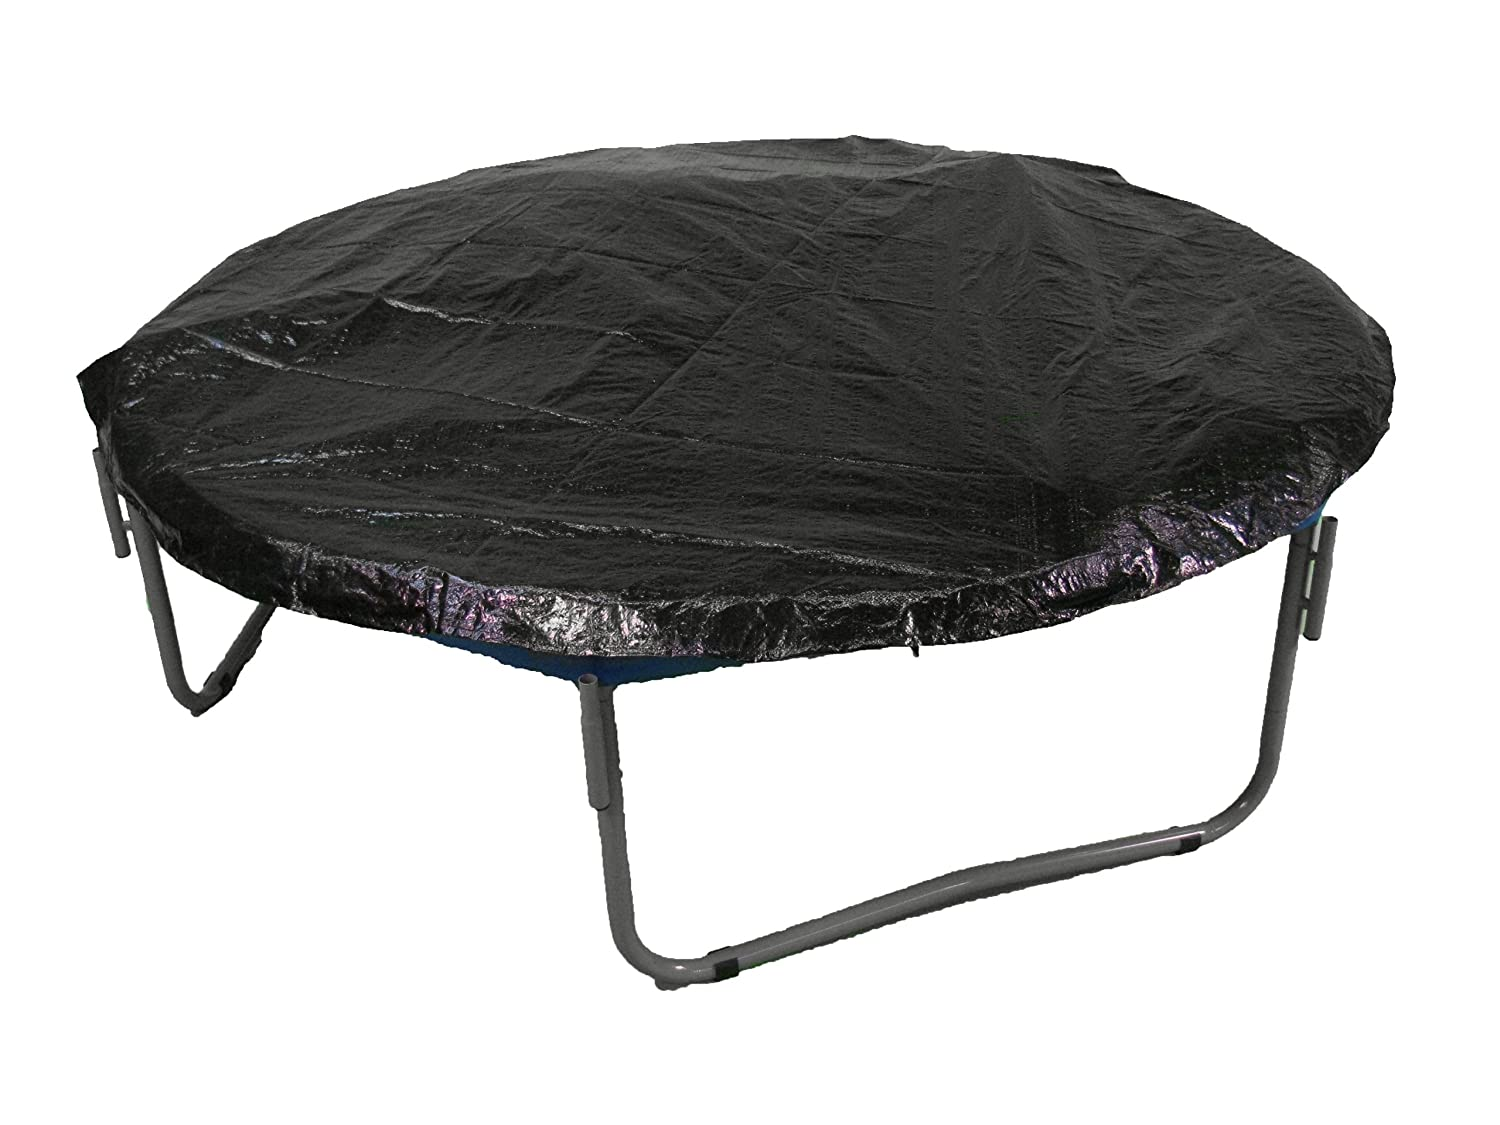 Round Trampoline Frames Fits for 8 FT Black Weather /& Rain Cover Upper Bounce 8 Trampoline Protection Cover